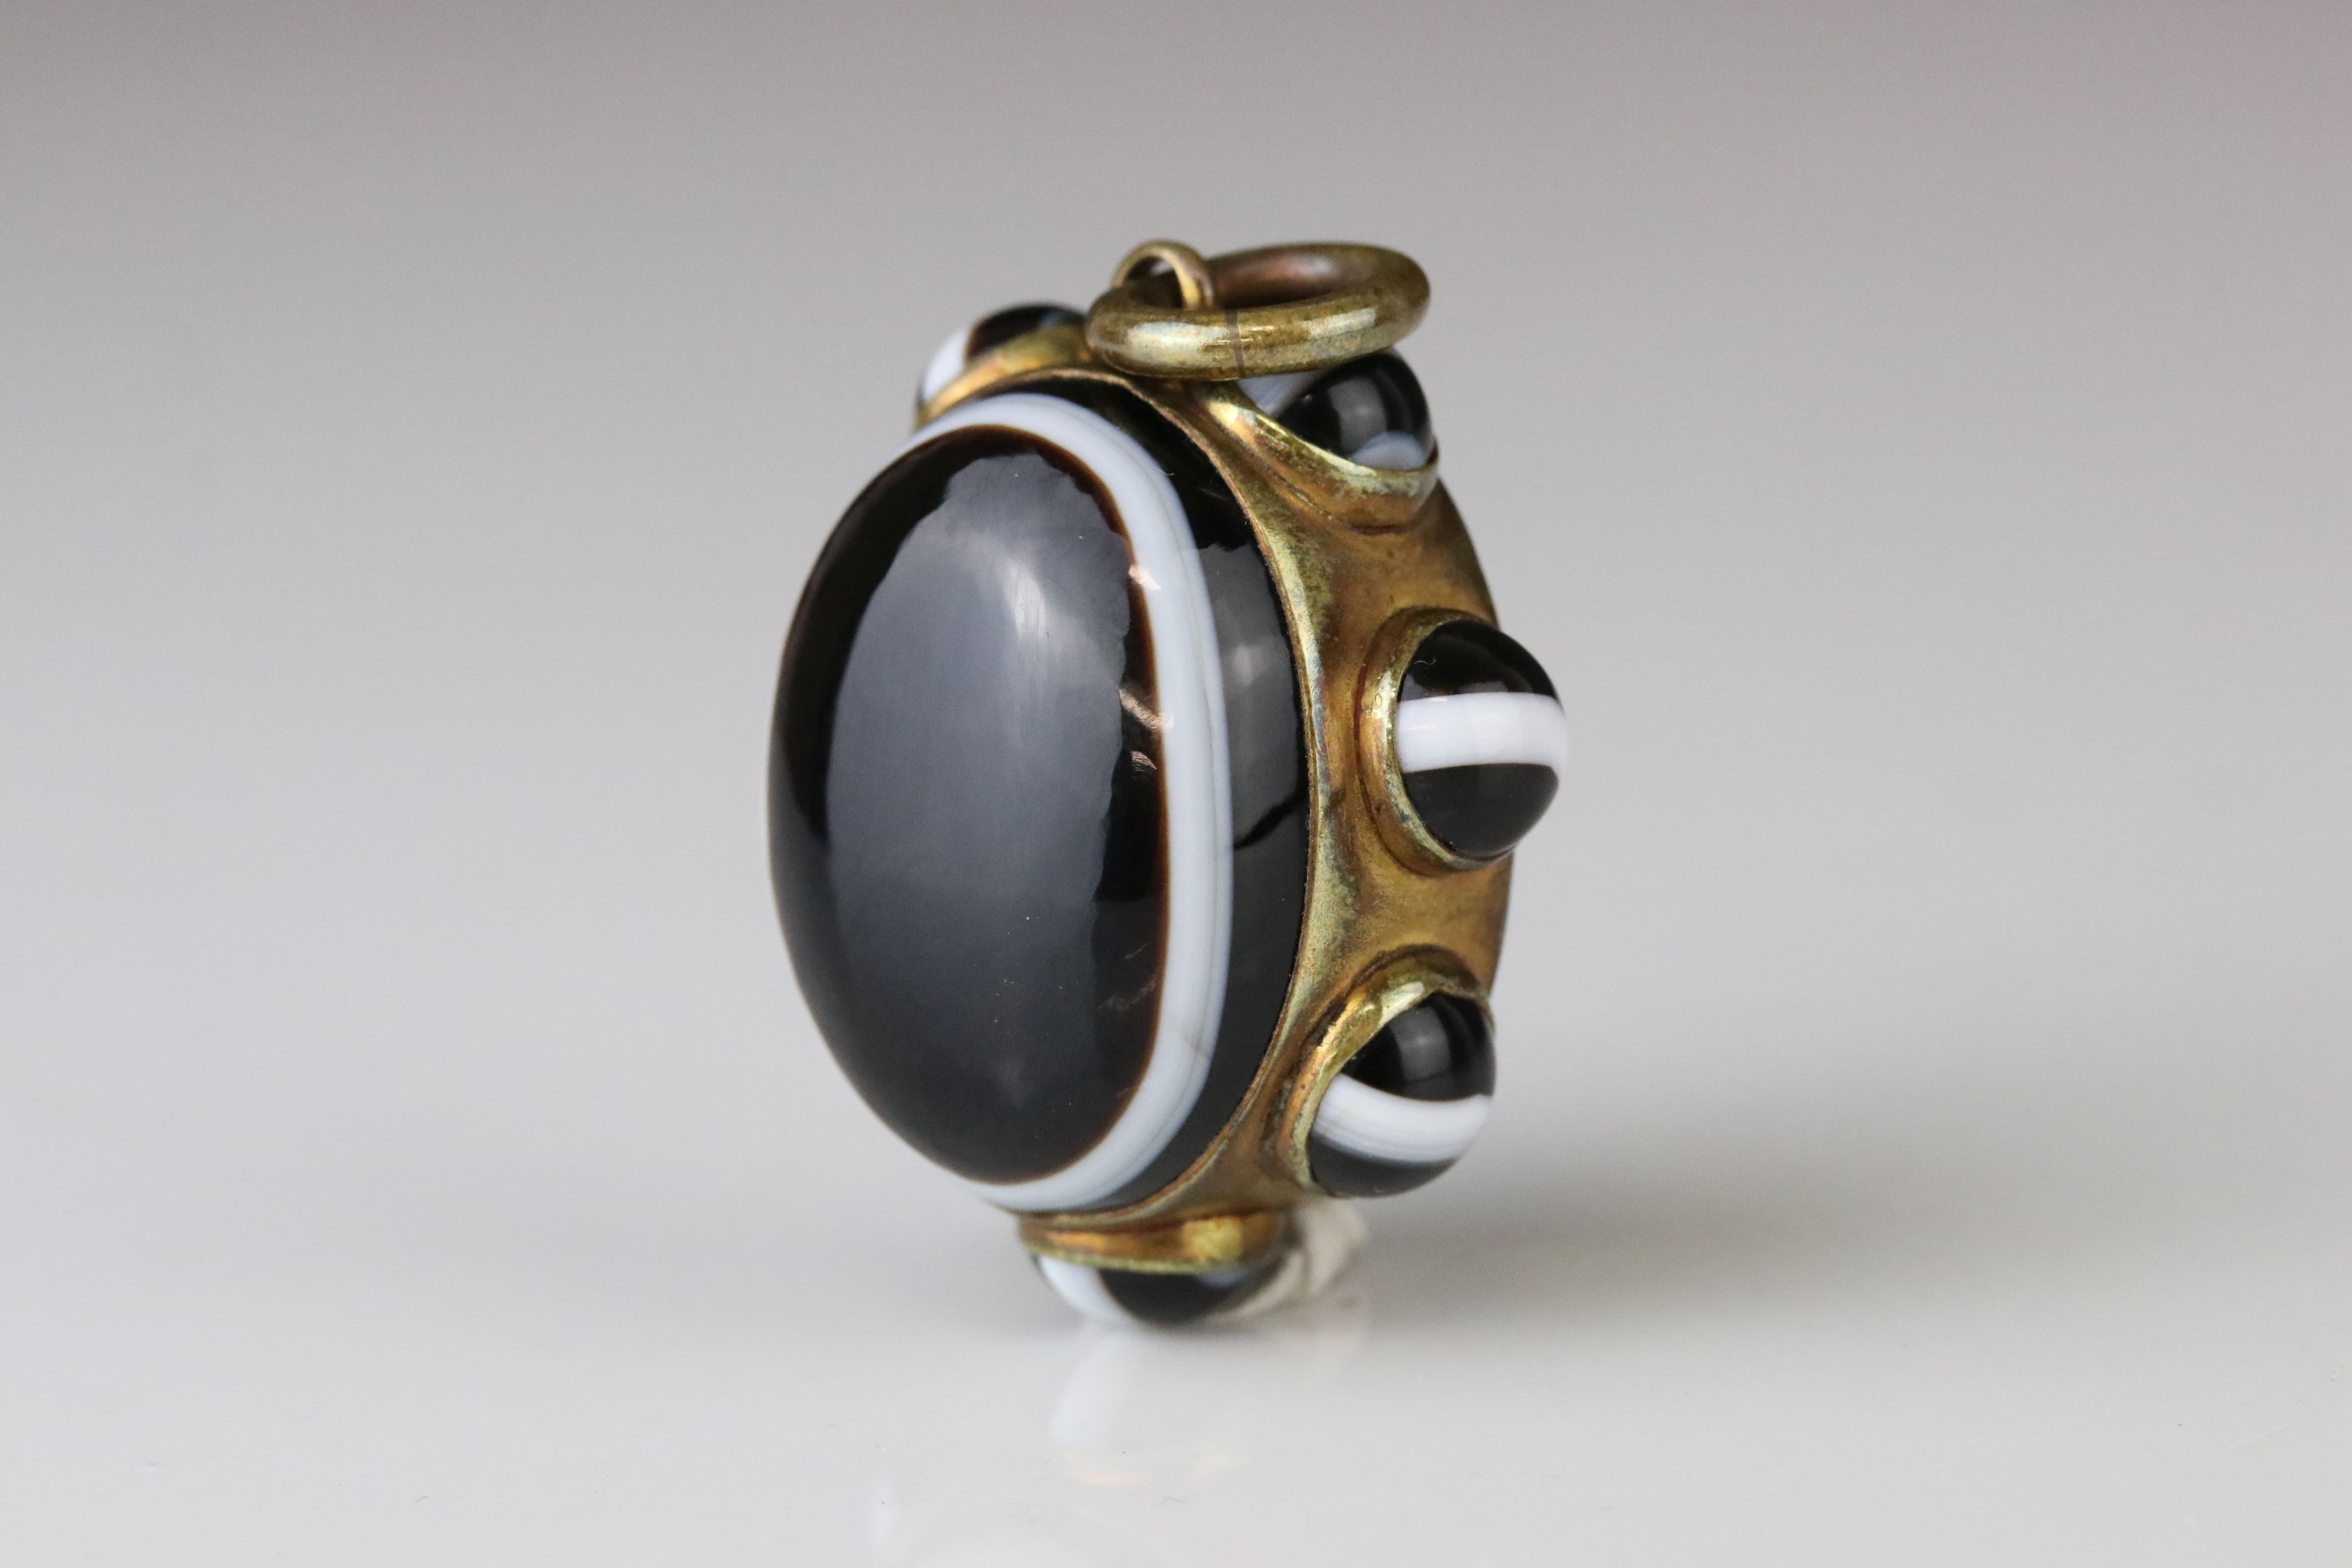 Victorian bulls eye agate pinchbeck pendant, the central oval cabochon cut bulls-eye agate measuring - Image 2 of 4